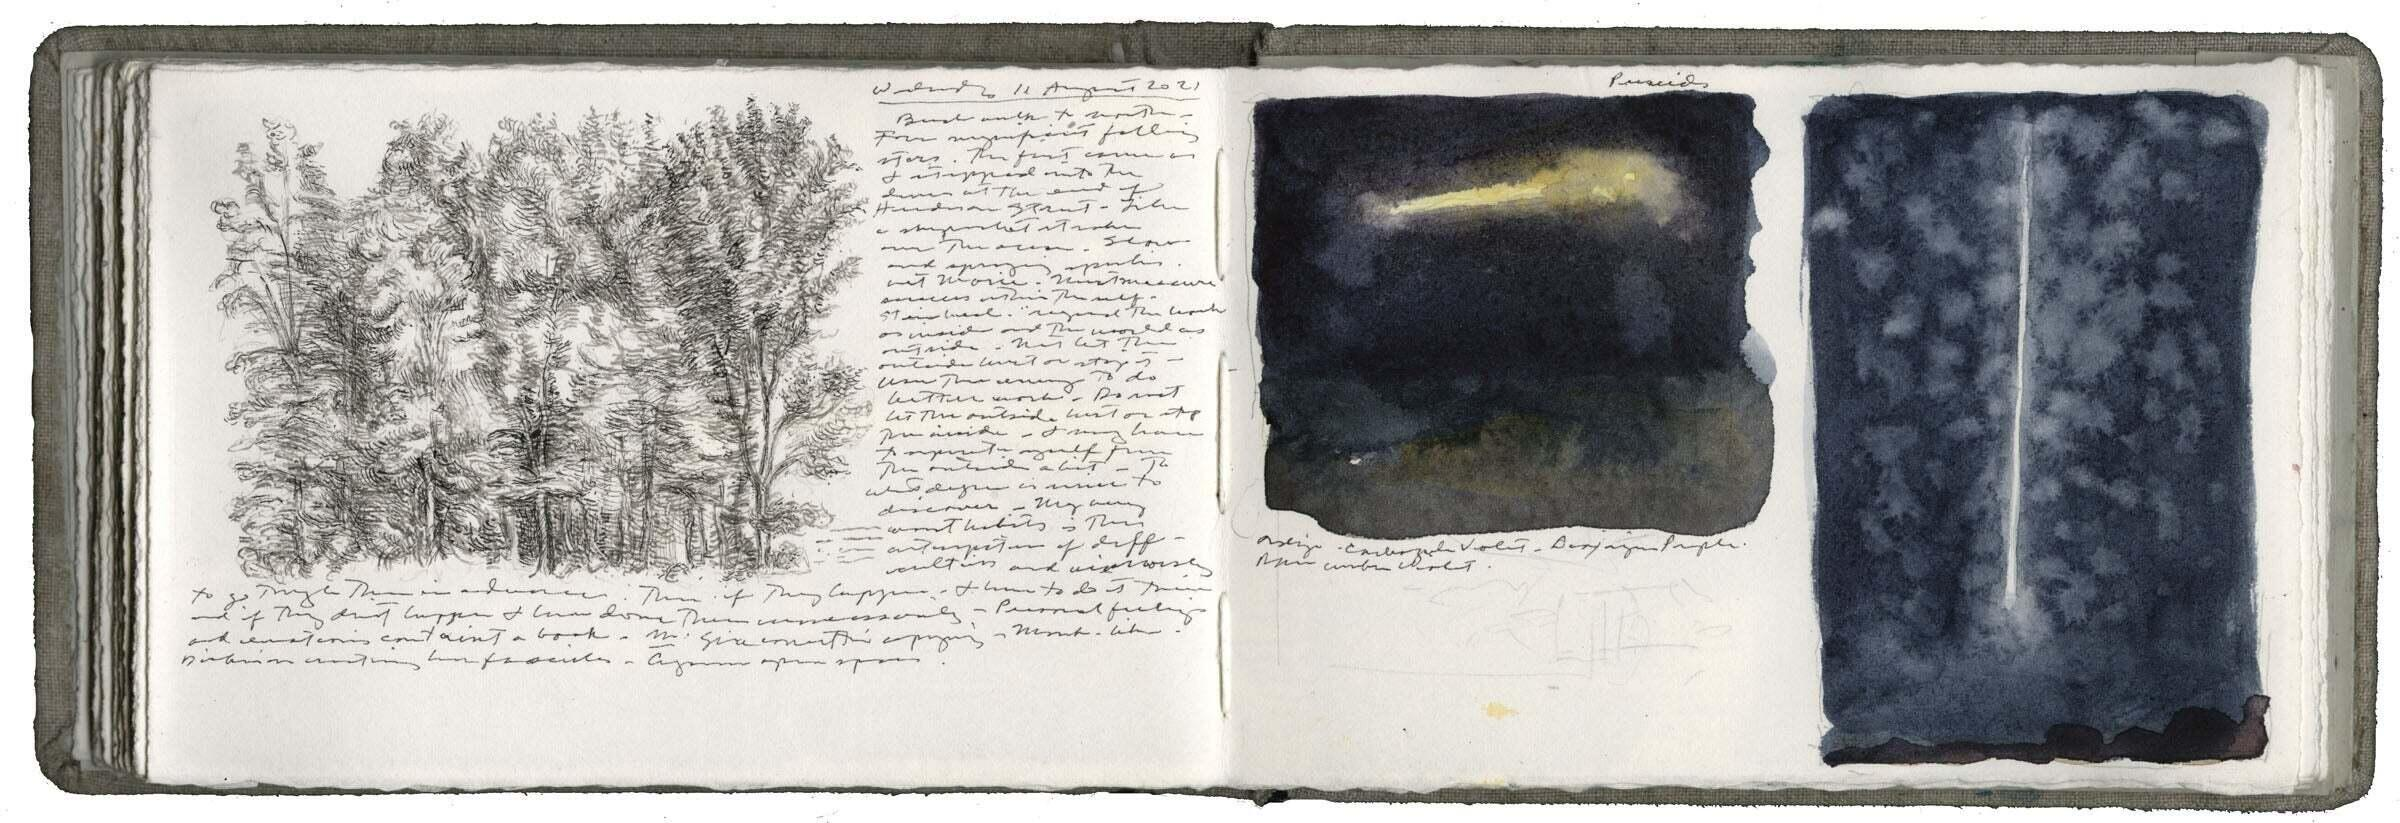 Study after Leonardo and Sketches of Perseid Meteors image